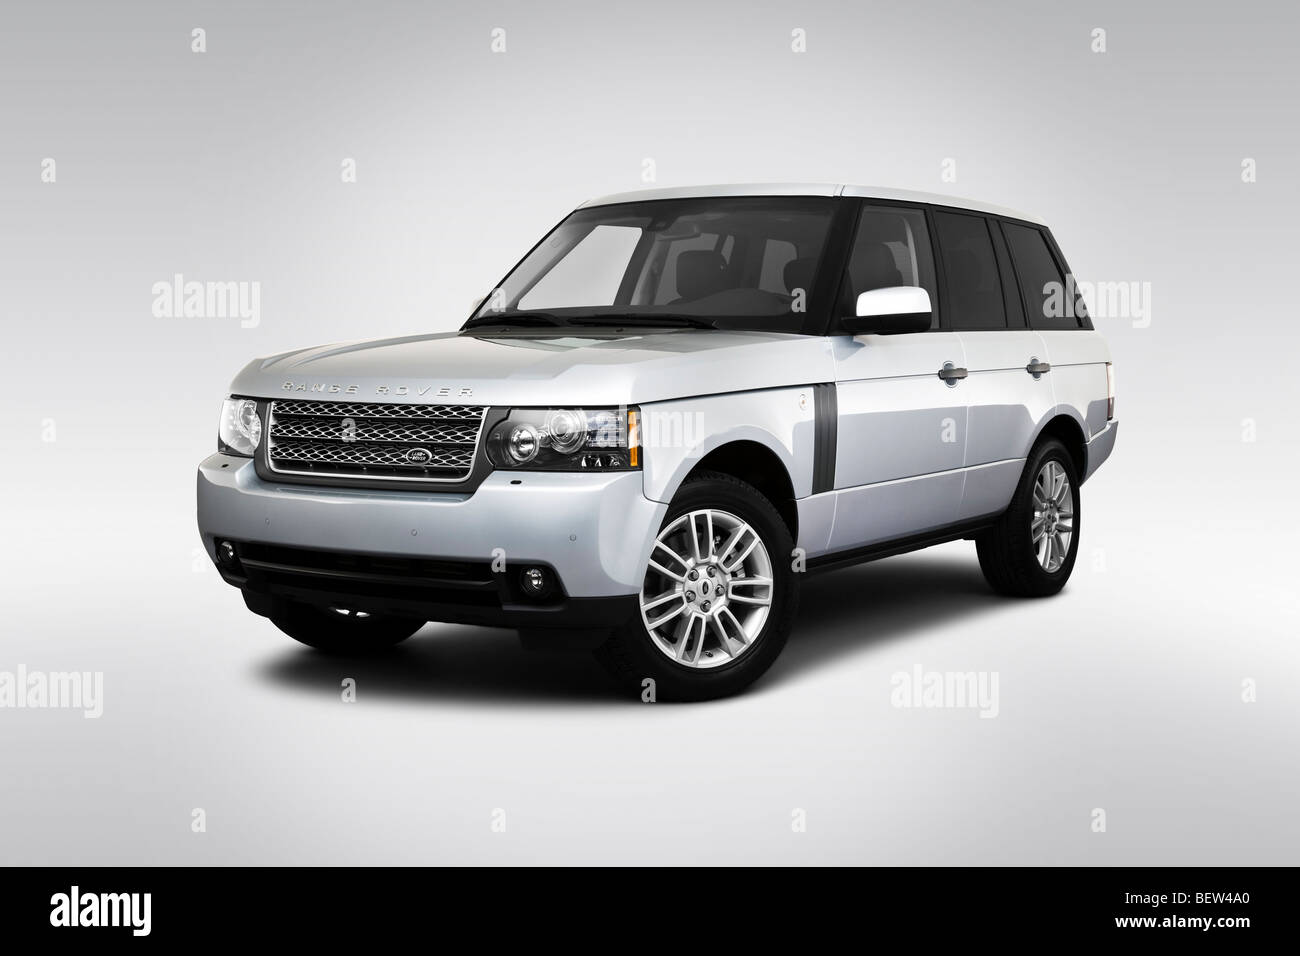 range rover sport hse stock photos range rover sport hse stock images alamy. Black Bedroom Furniture Sets. Home Design Ideas